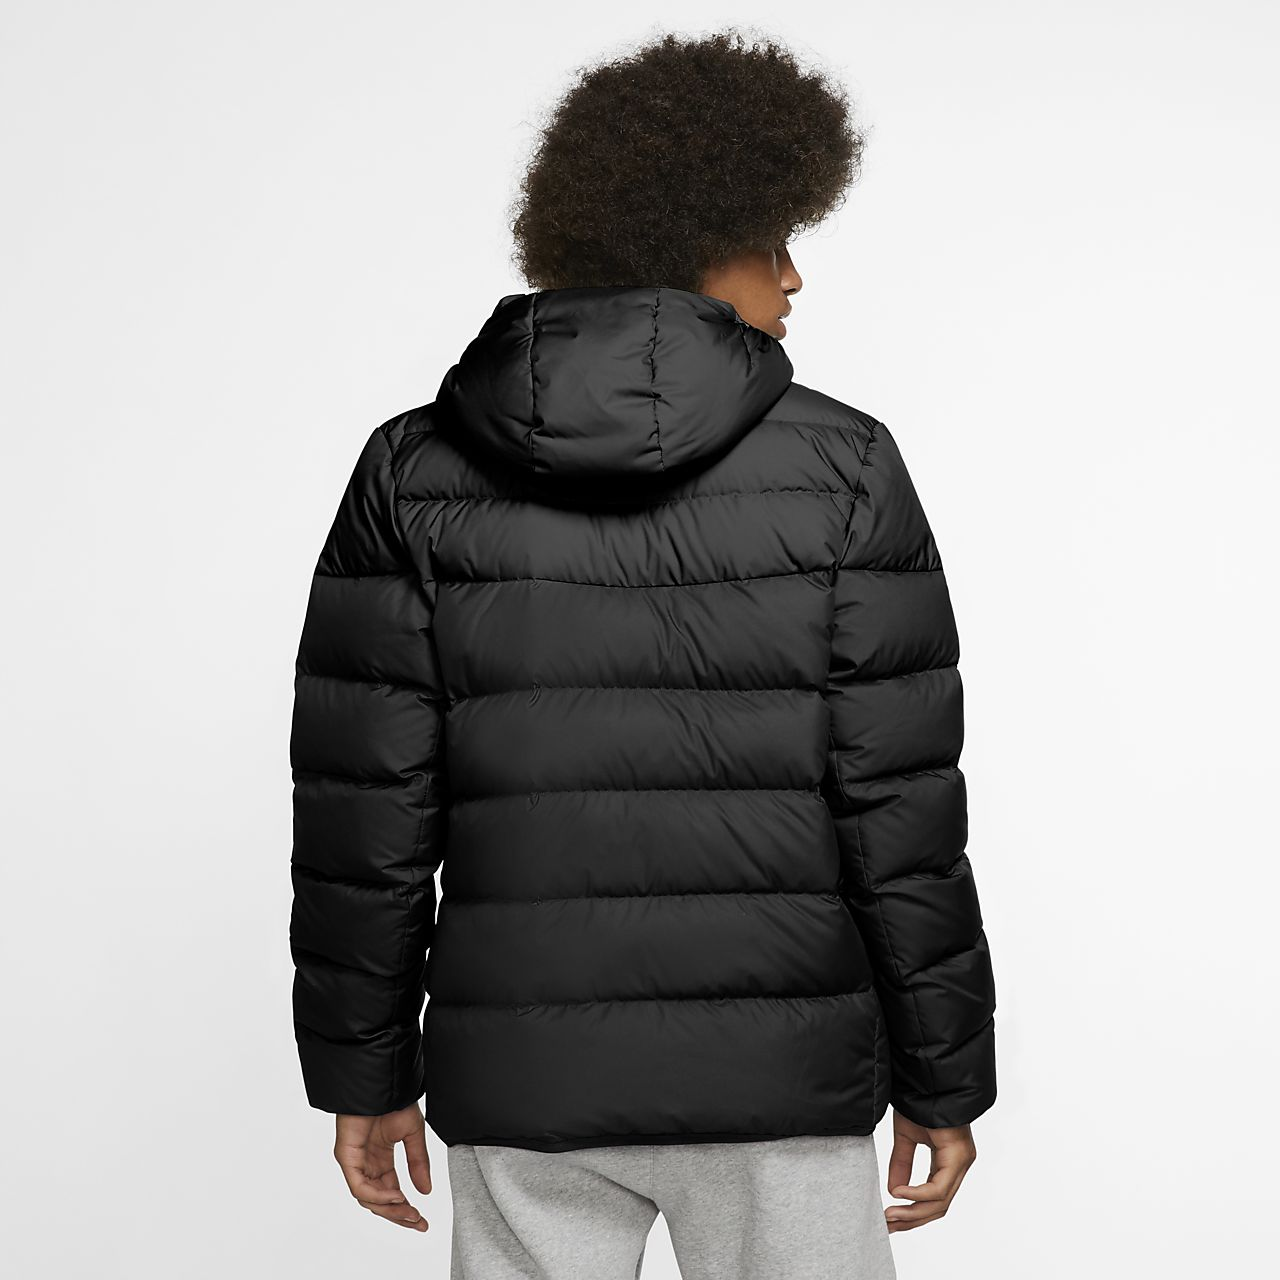 c96706739 Nike Sportswear Windrunner Down-Fill Men's Hooded Jacket